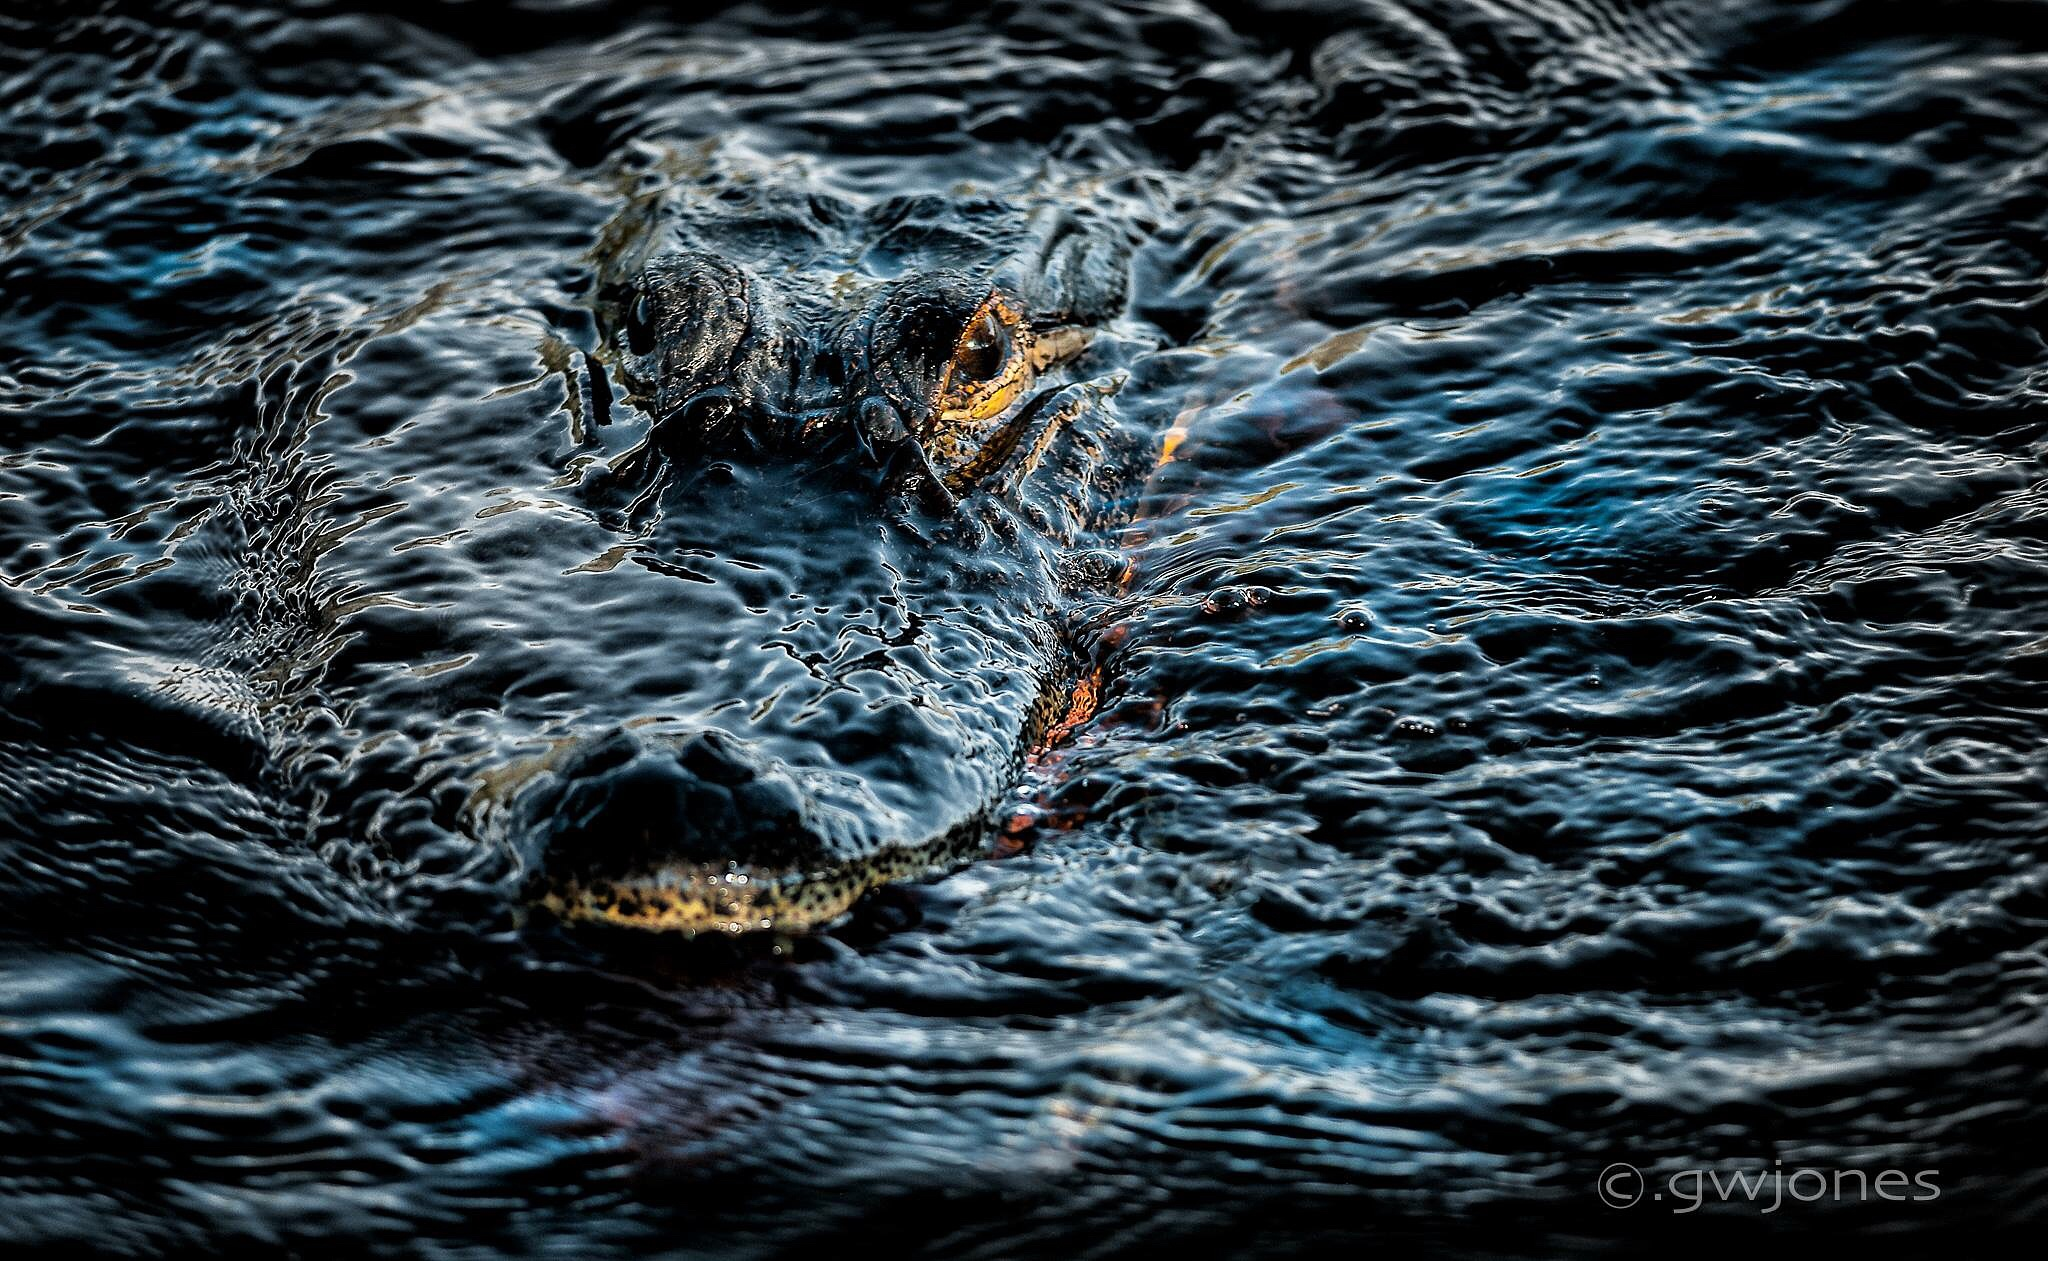 Gator on the St. Johns River by gwjones317